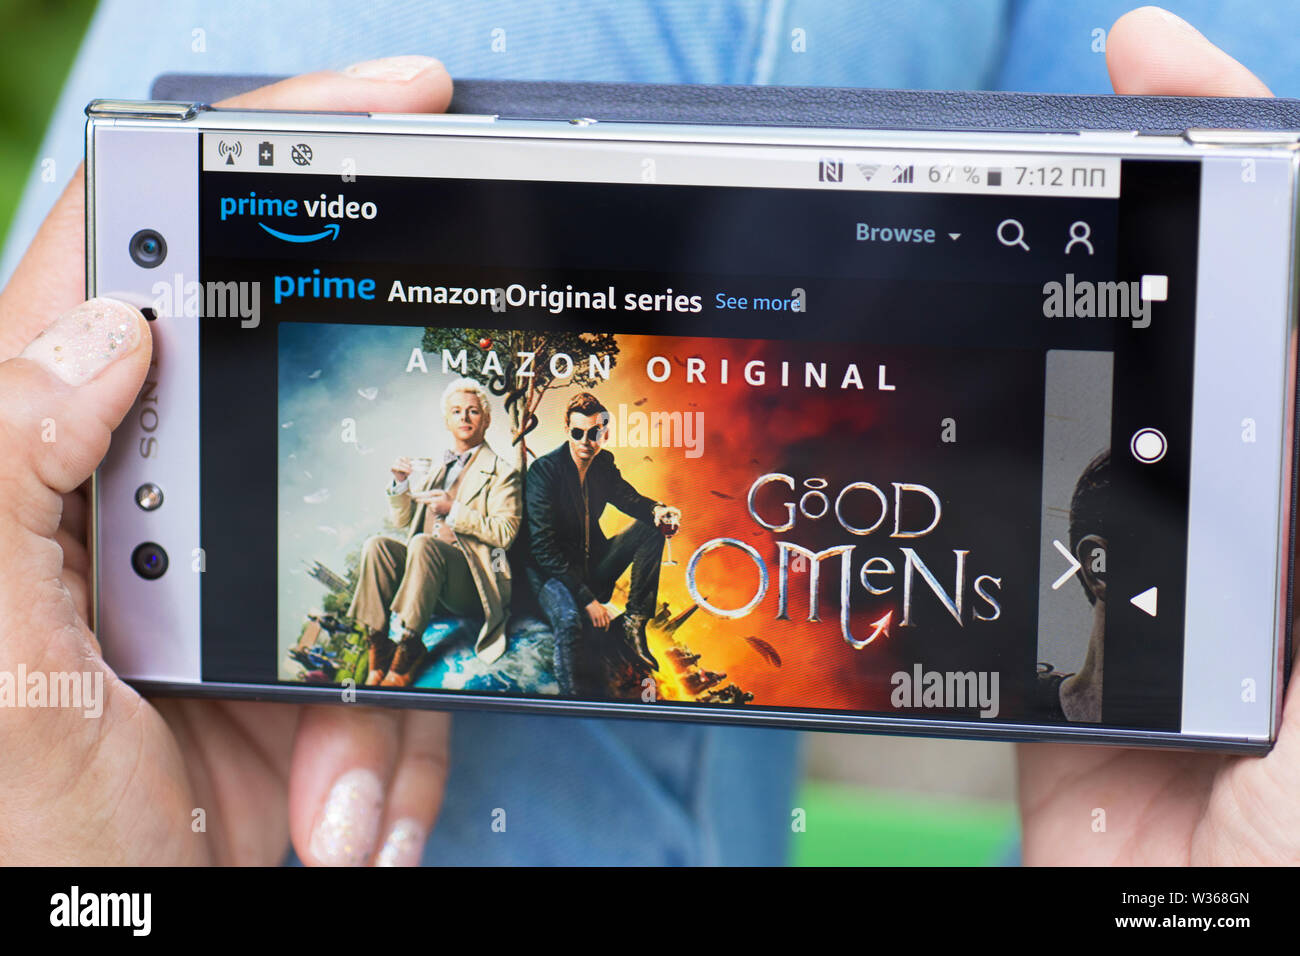 Amazon Prime Video, Prime Amazon Original Series, Good Omens Movies streaming website on Mobile Phone screen Stock Photo